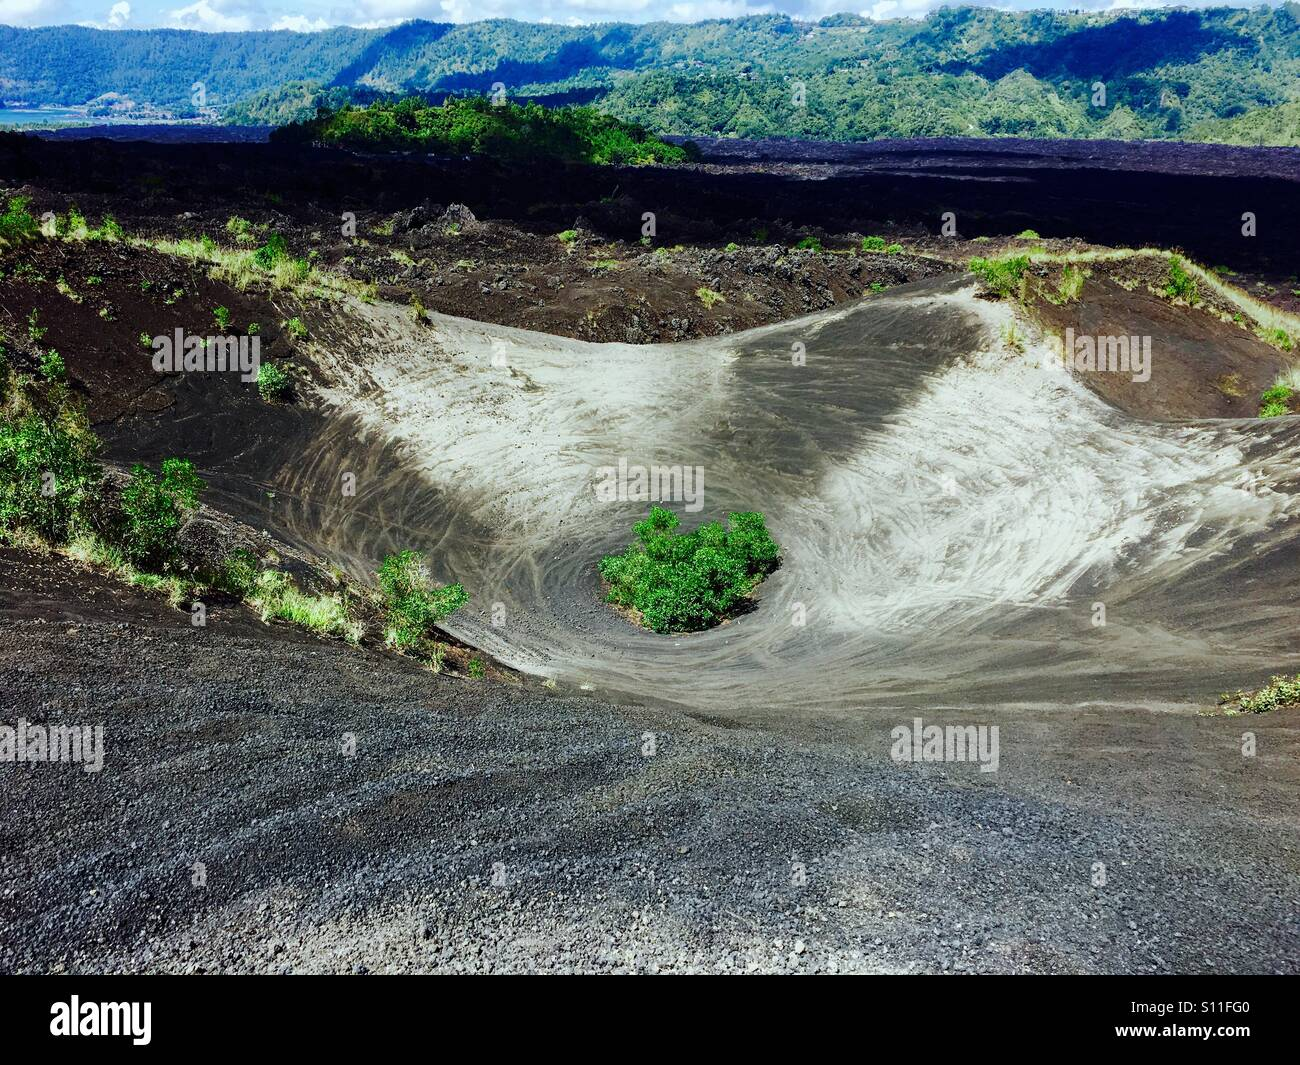 Old Volcanic vent turned into a modern day perpetual corner for dirt bikes. - Stock Image